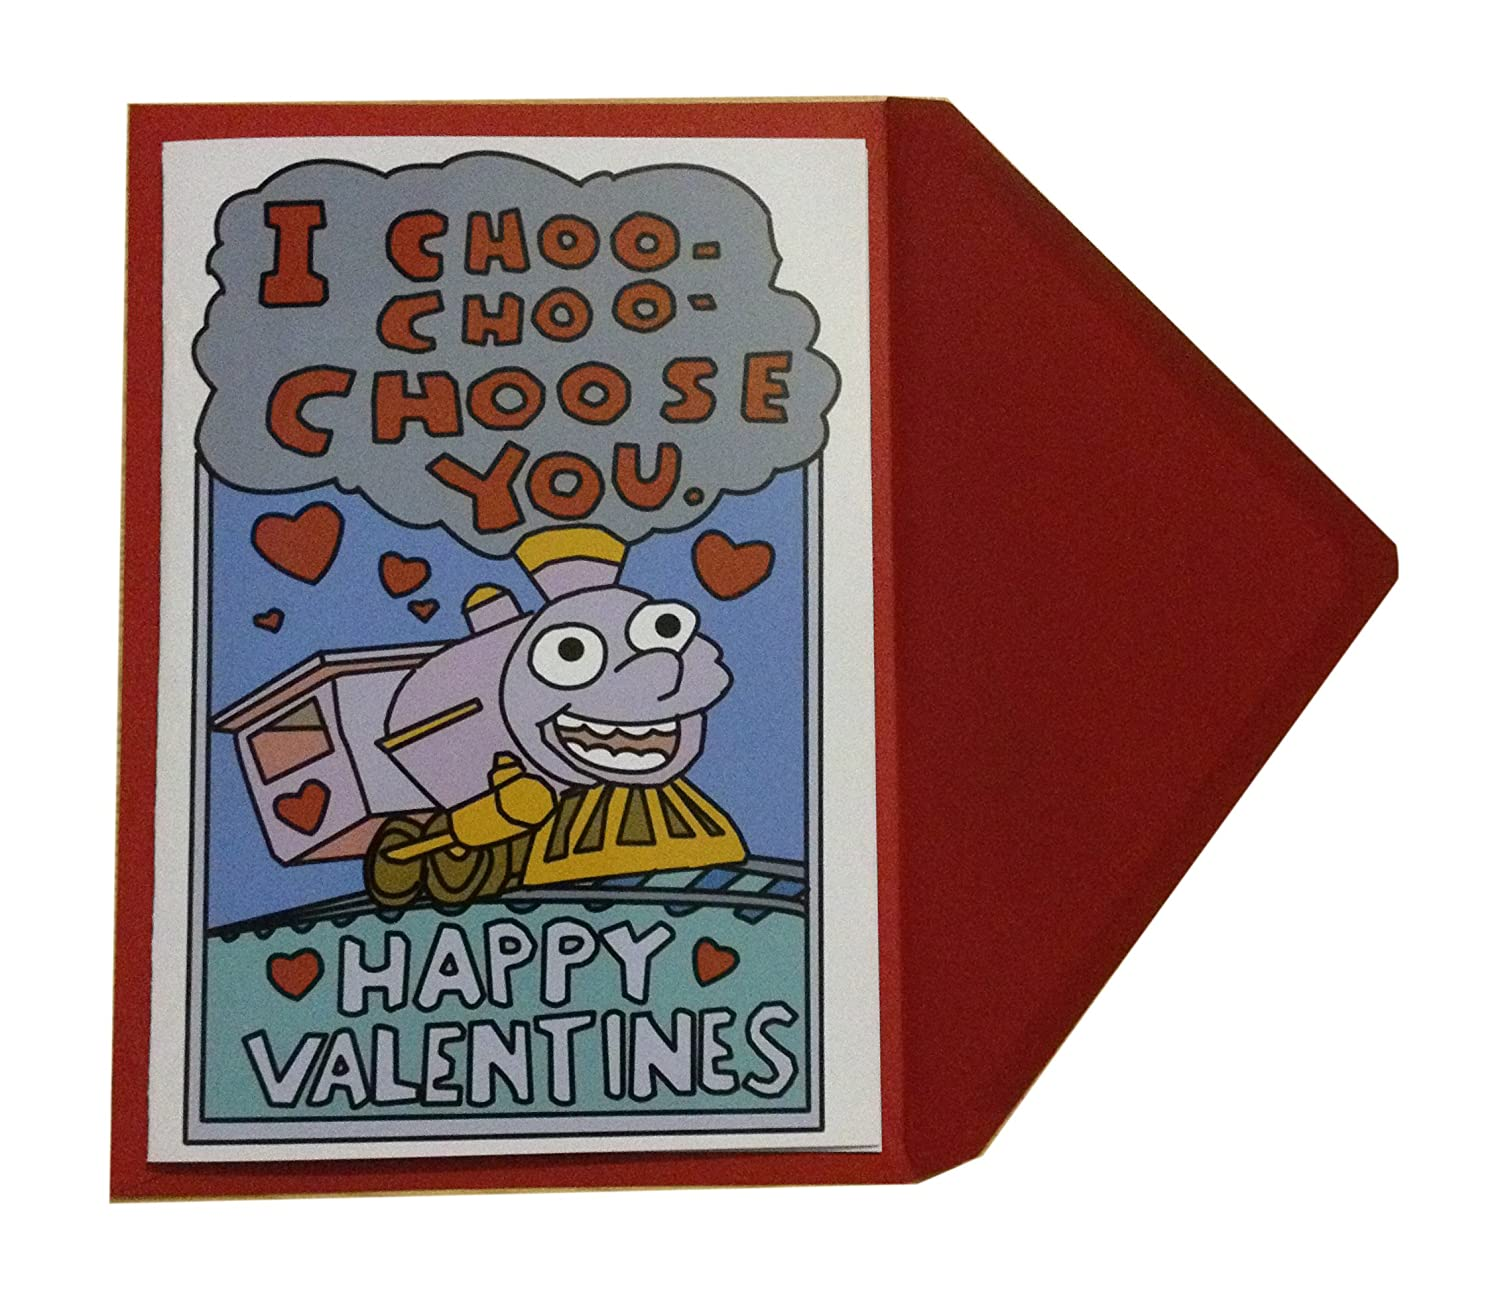 image about I Choo Choo Choose You Printable Card titled I Choo Choo Select Your self Valentines Working day Card - for Boyfriend